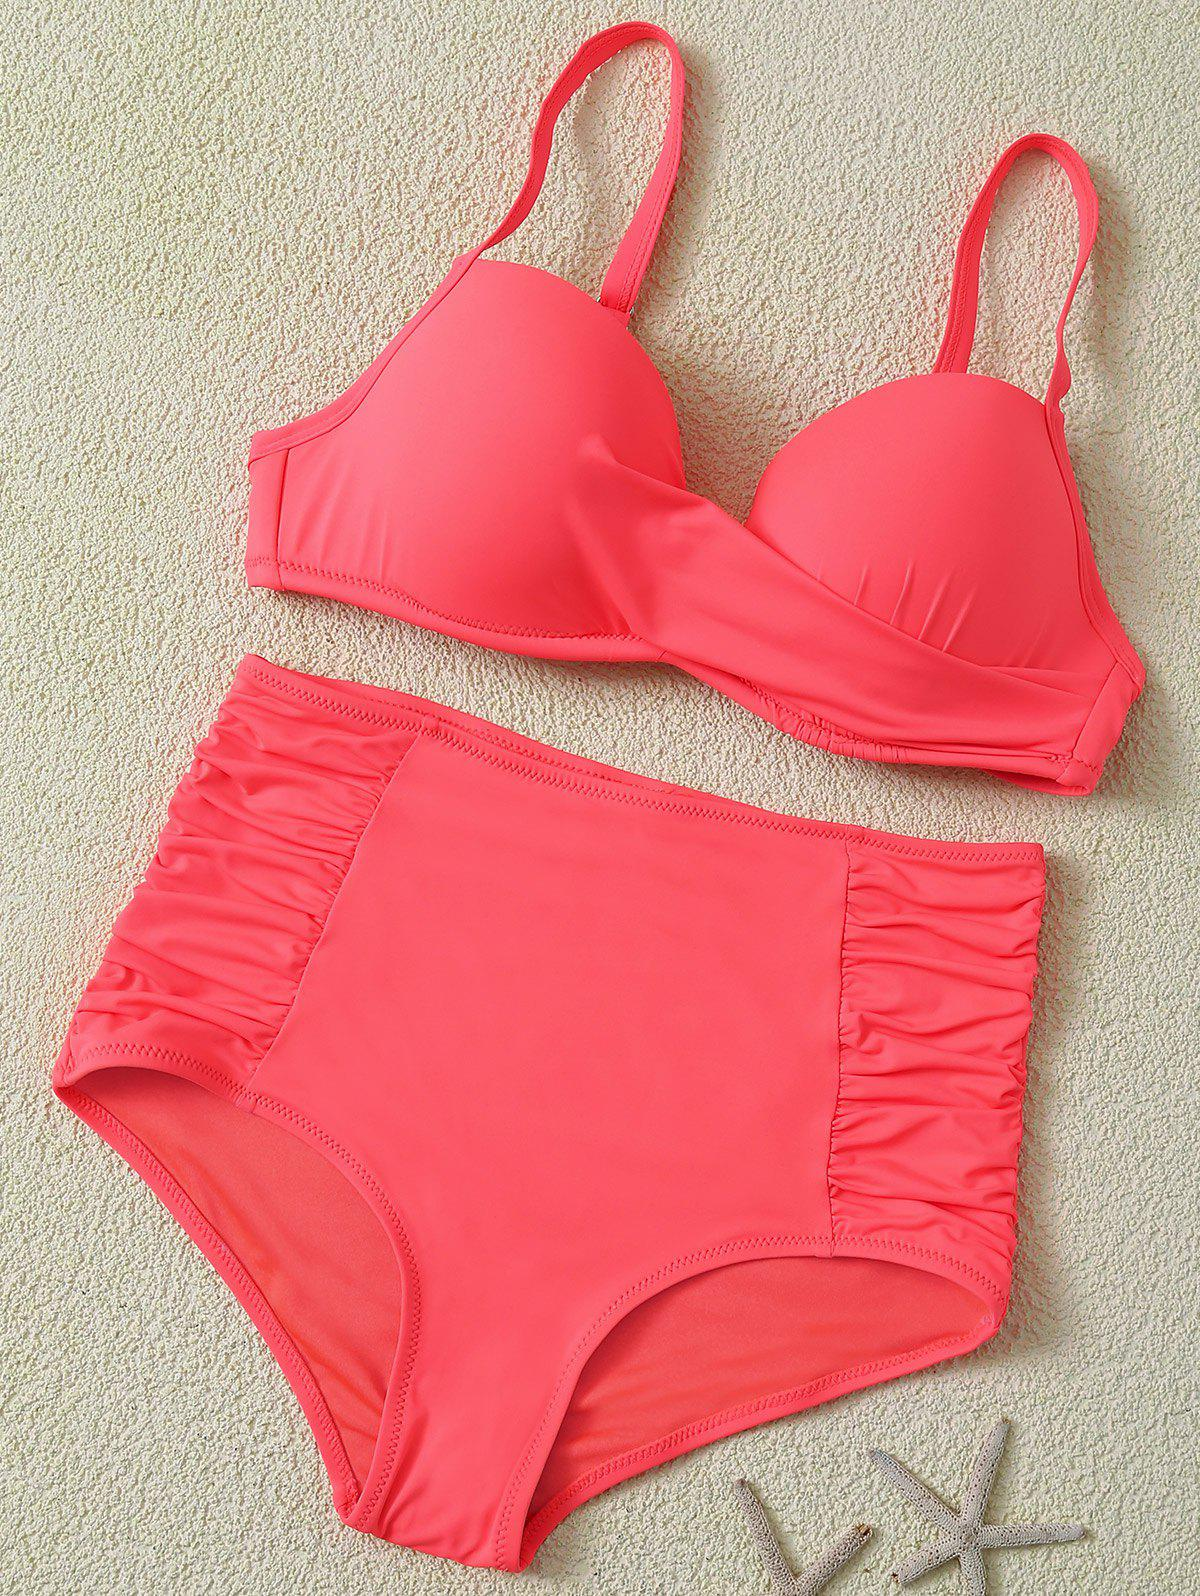 Padded High Waist Candy Color Bikini - RED XL